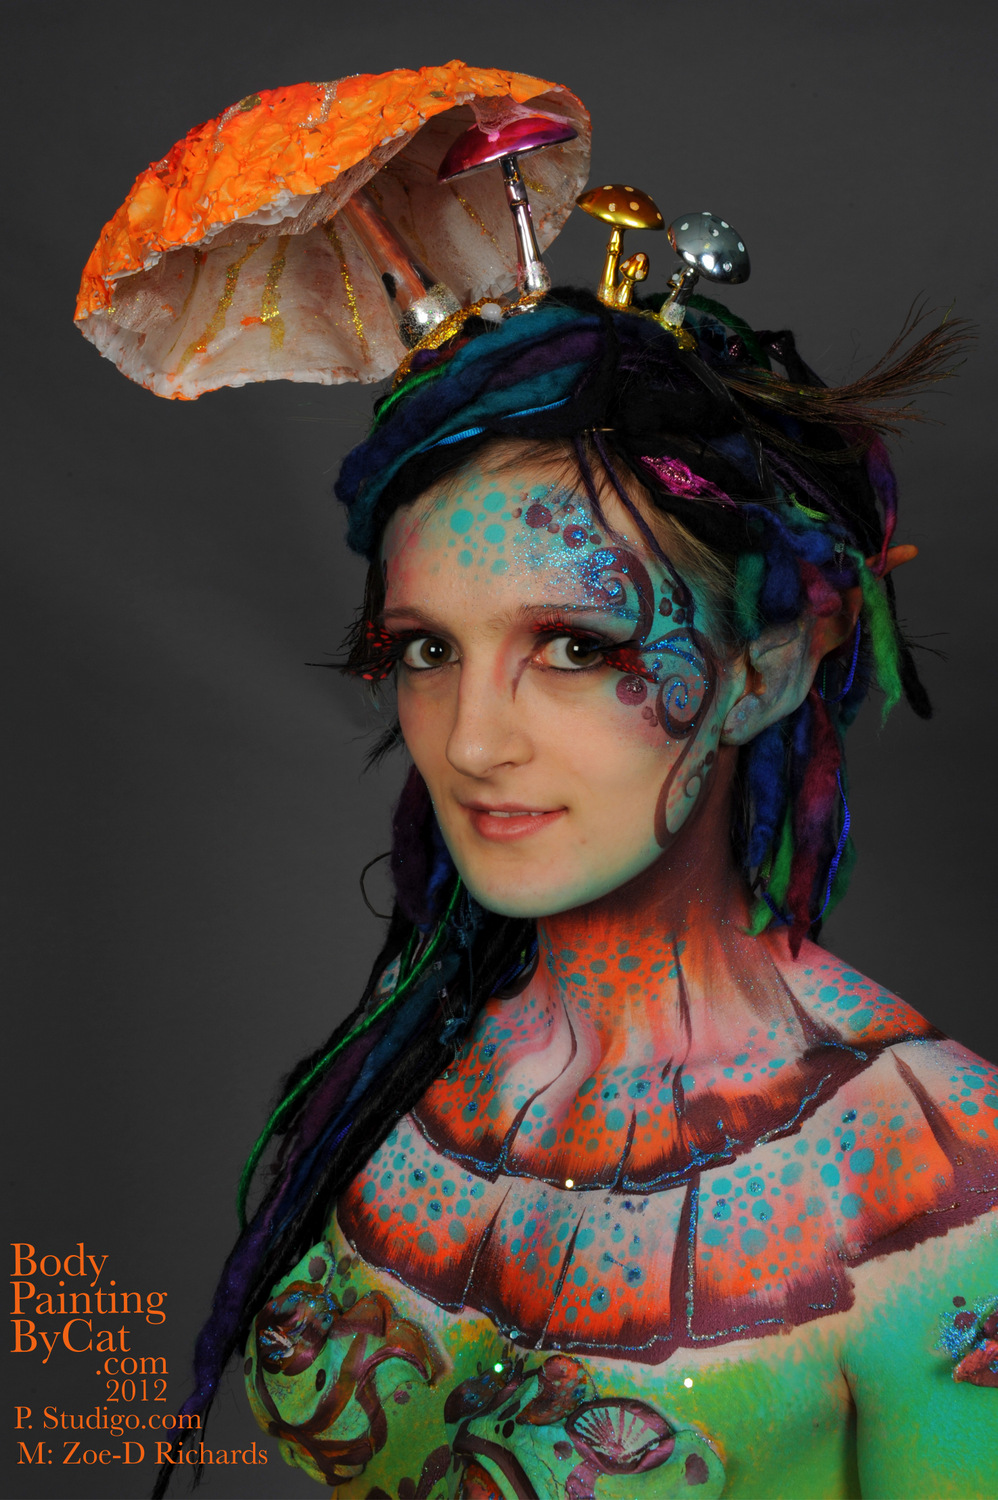 UK Face & Body Art Convention 2012 – Body Painting by Cat